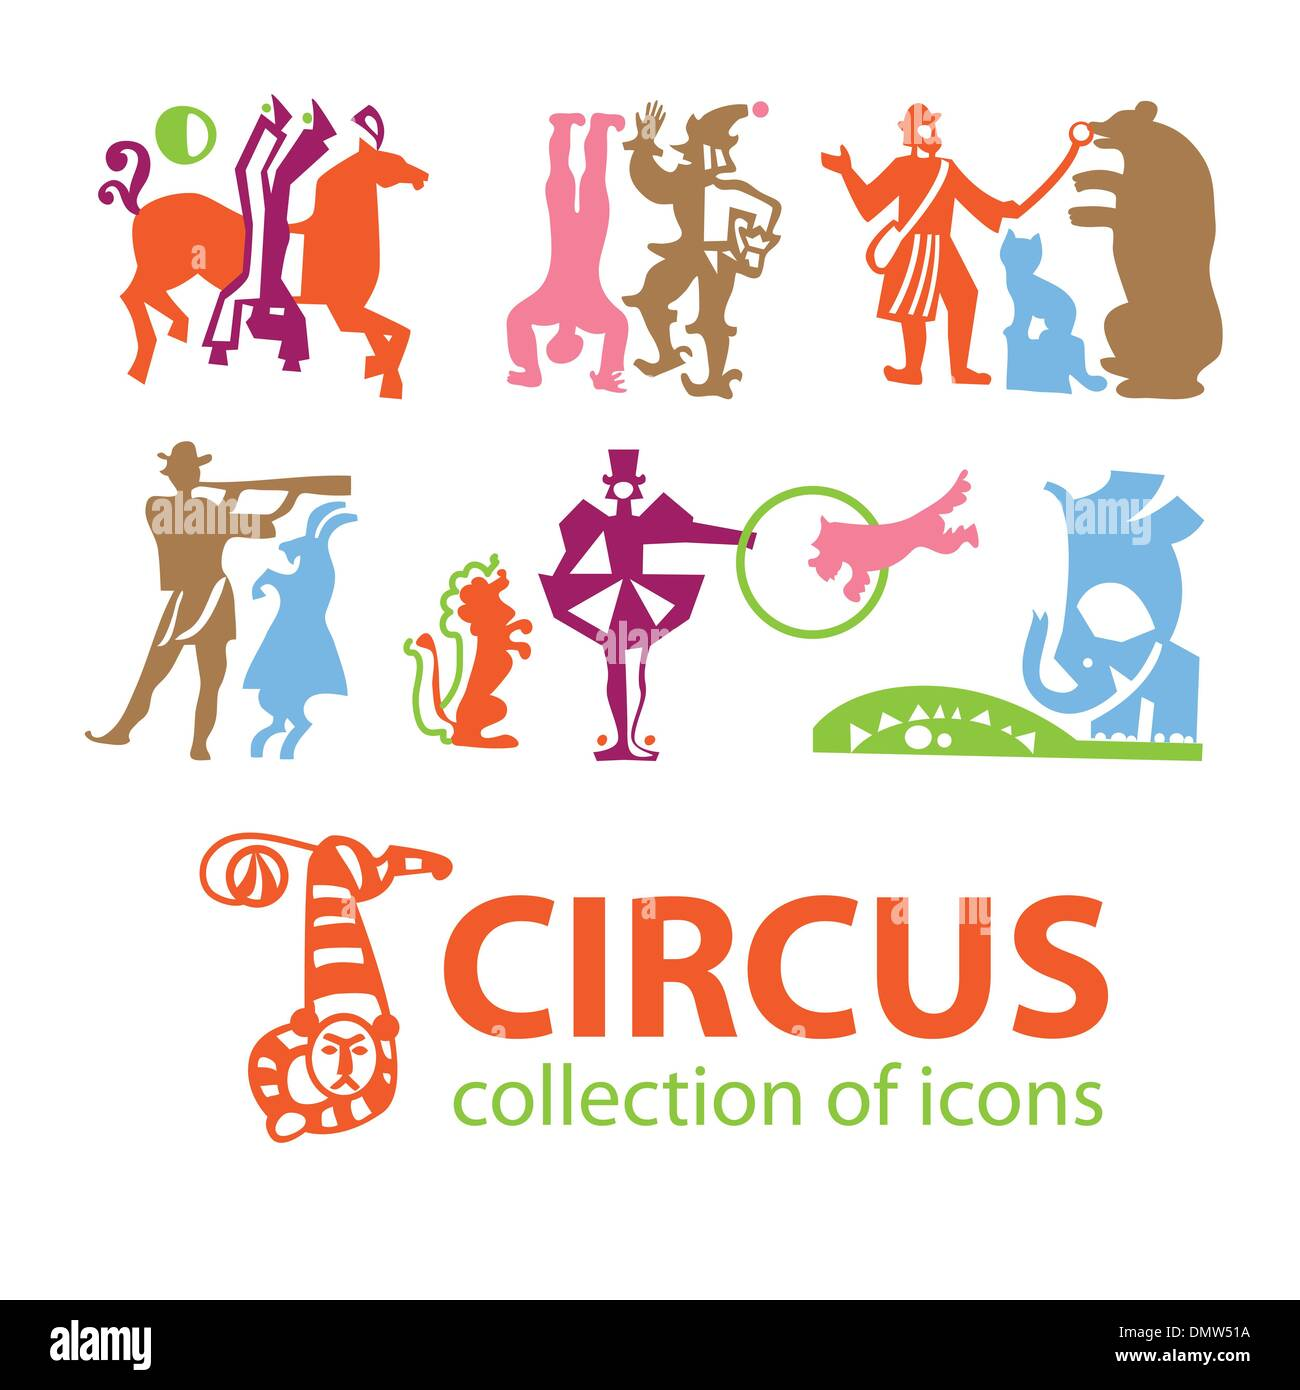 Circus-collection-icons - Stock Image